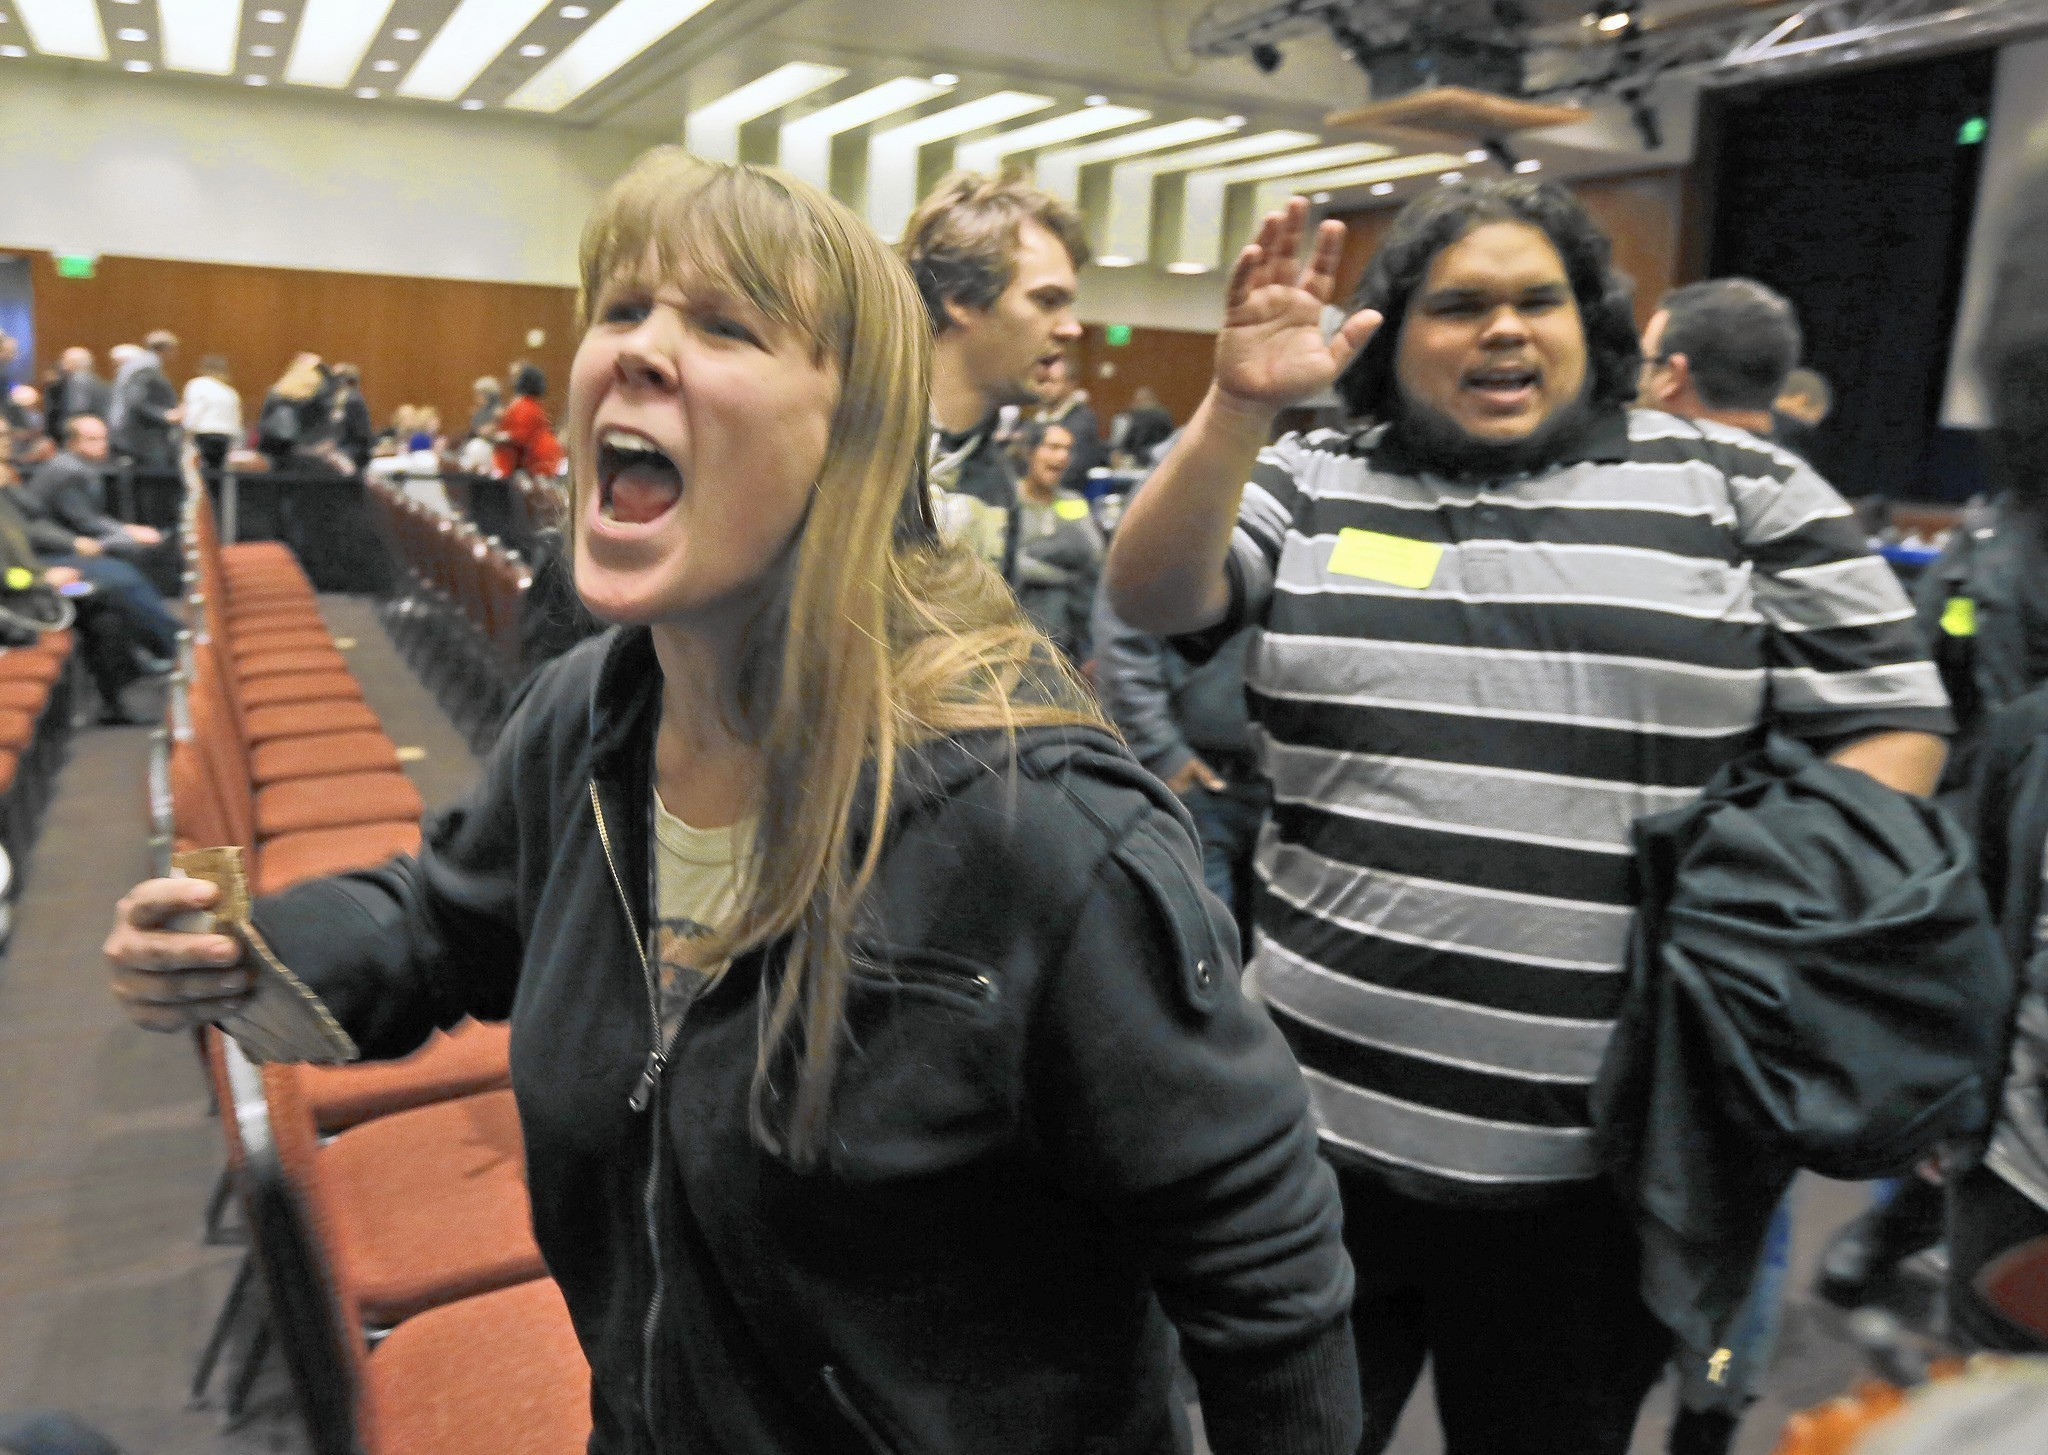 UC students plan walkout as proposed tuition hike looms